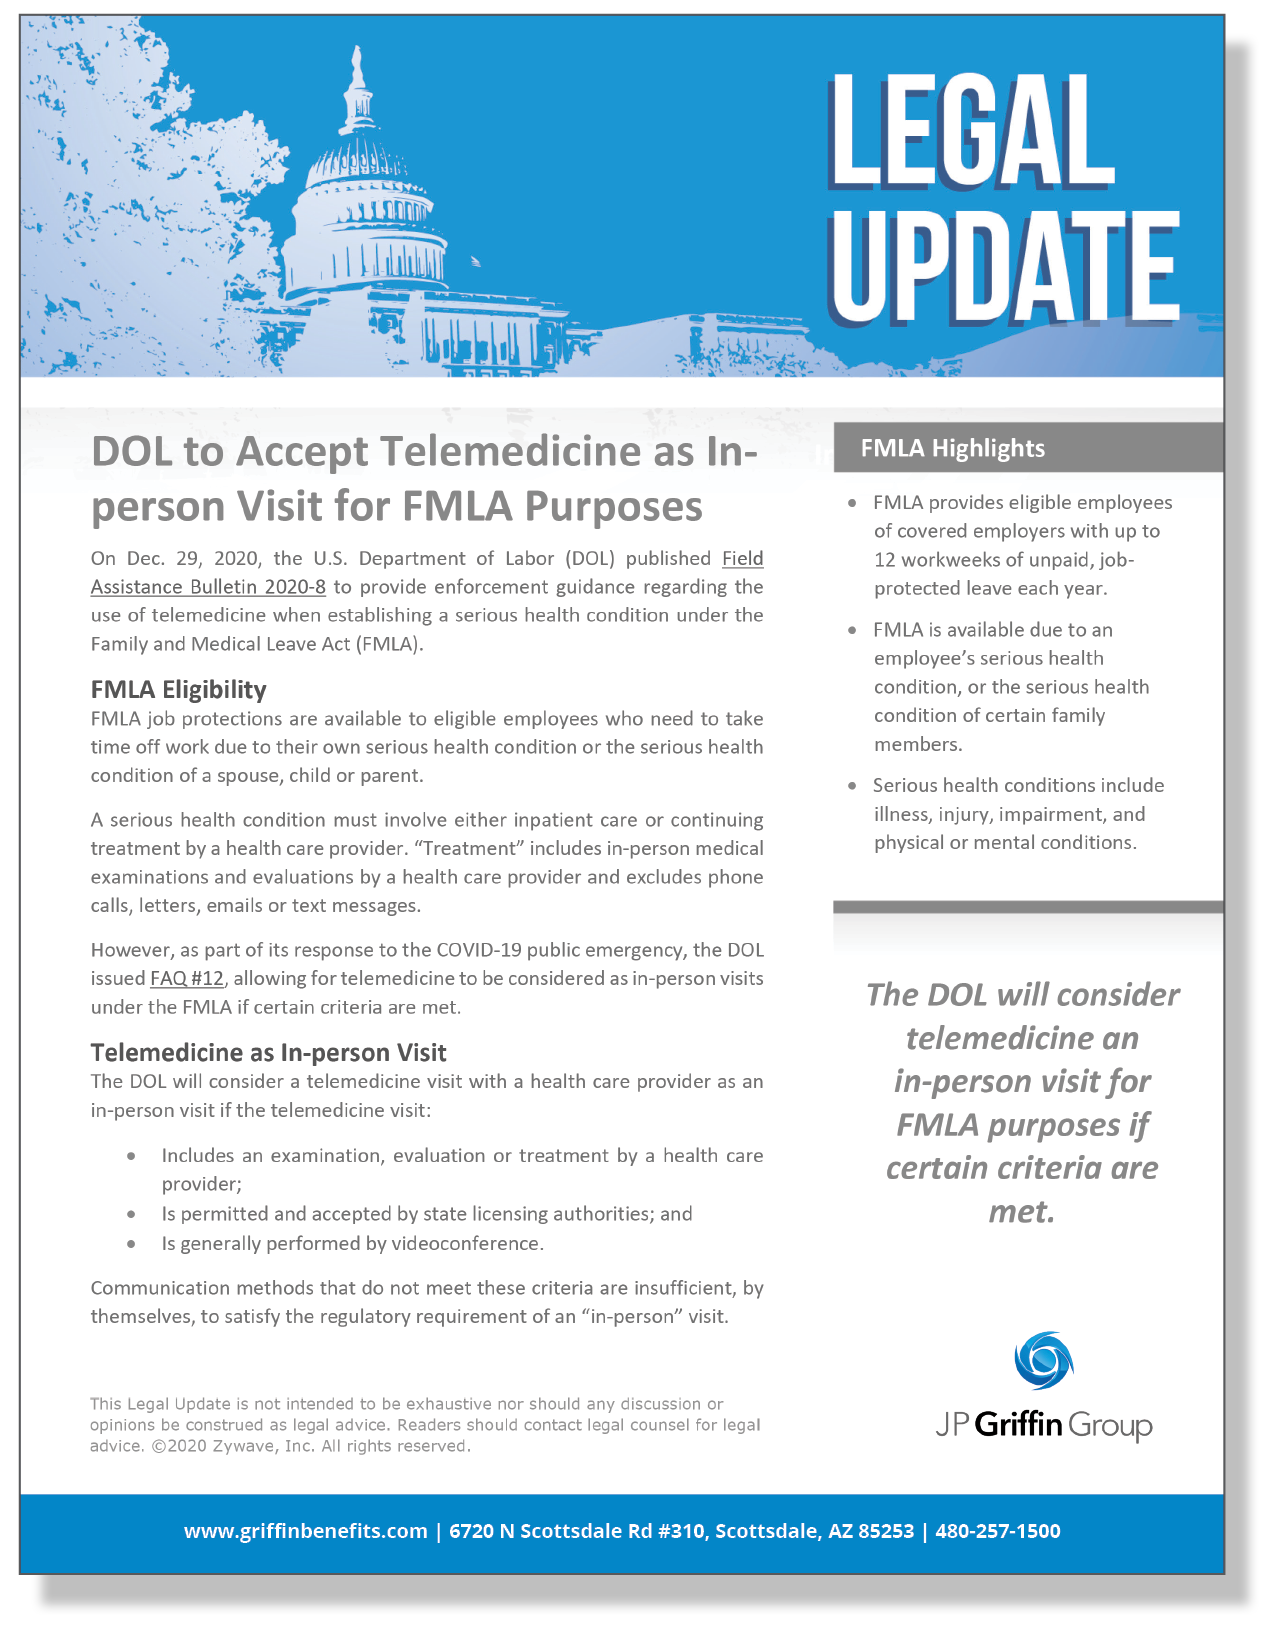 DOL To Accept Telemedicine as In-person visit for FMLA Purposes